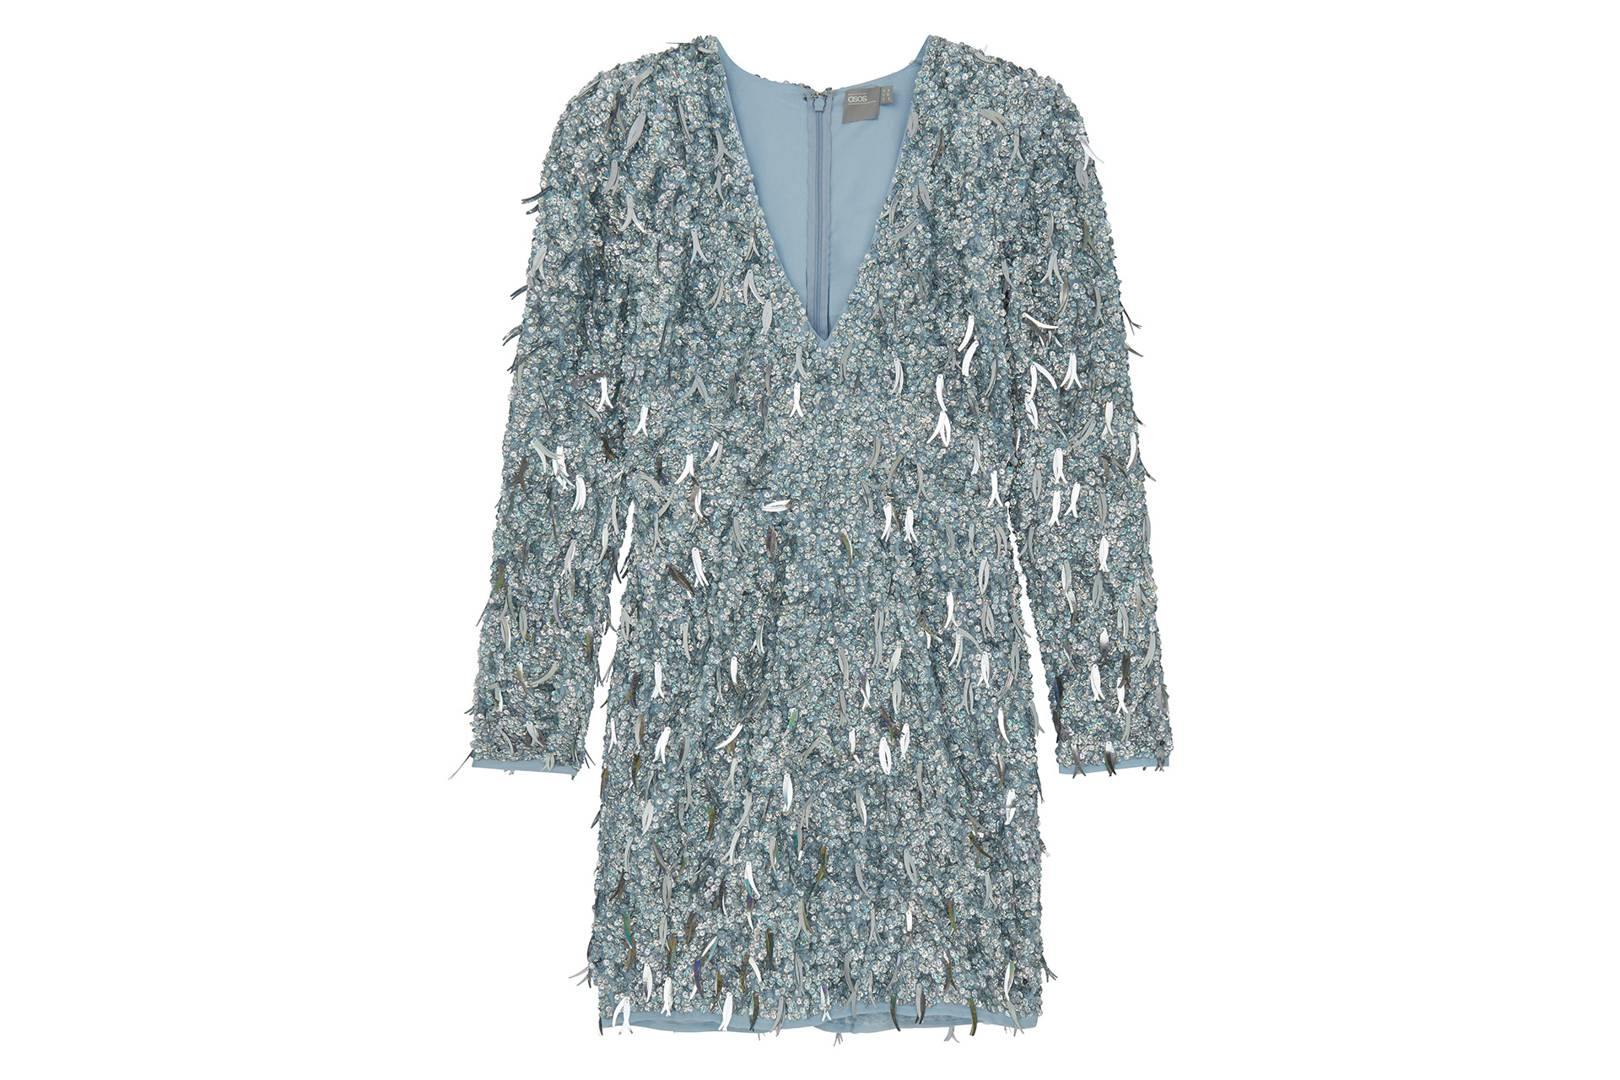 Sequin Dresses & Sparkly Festival Outfits | Glamour UK